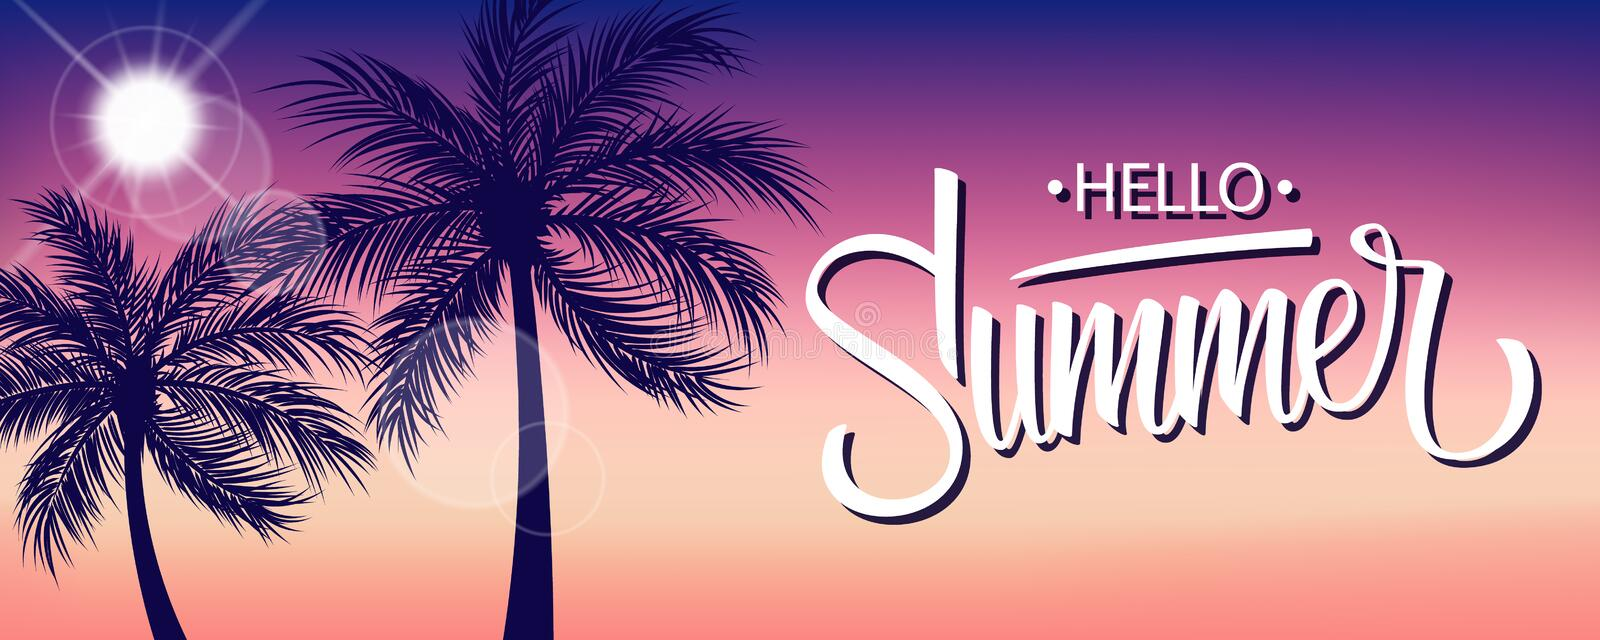 Hello Summer banner with sun and palm trees silhouette. Hand drawn lettering. Summertime background. stock illustration